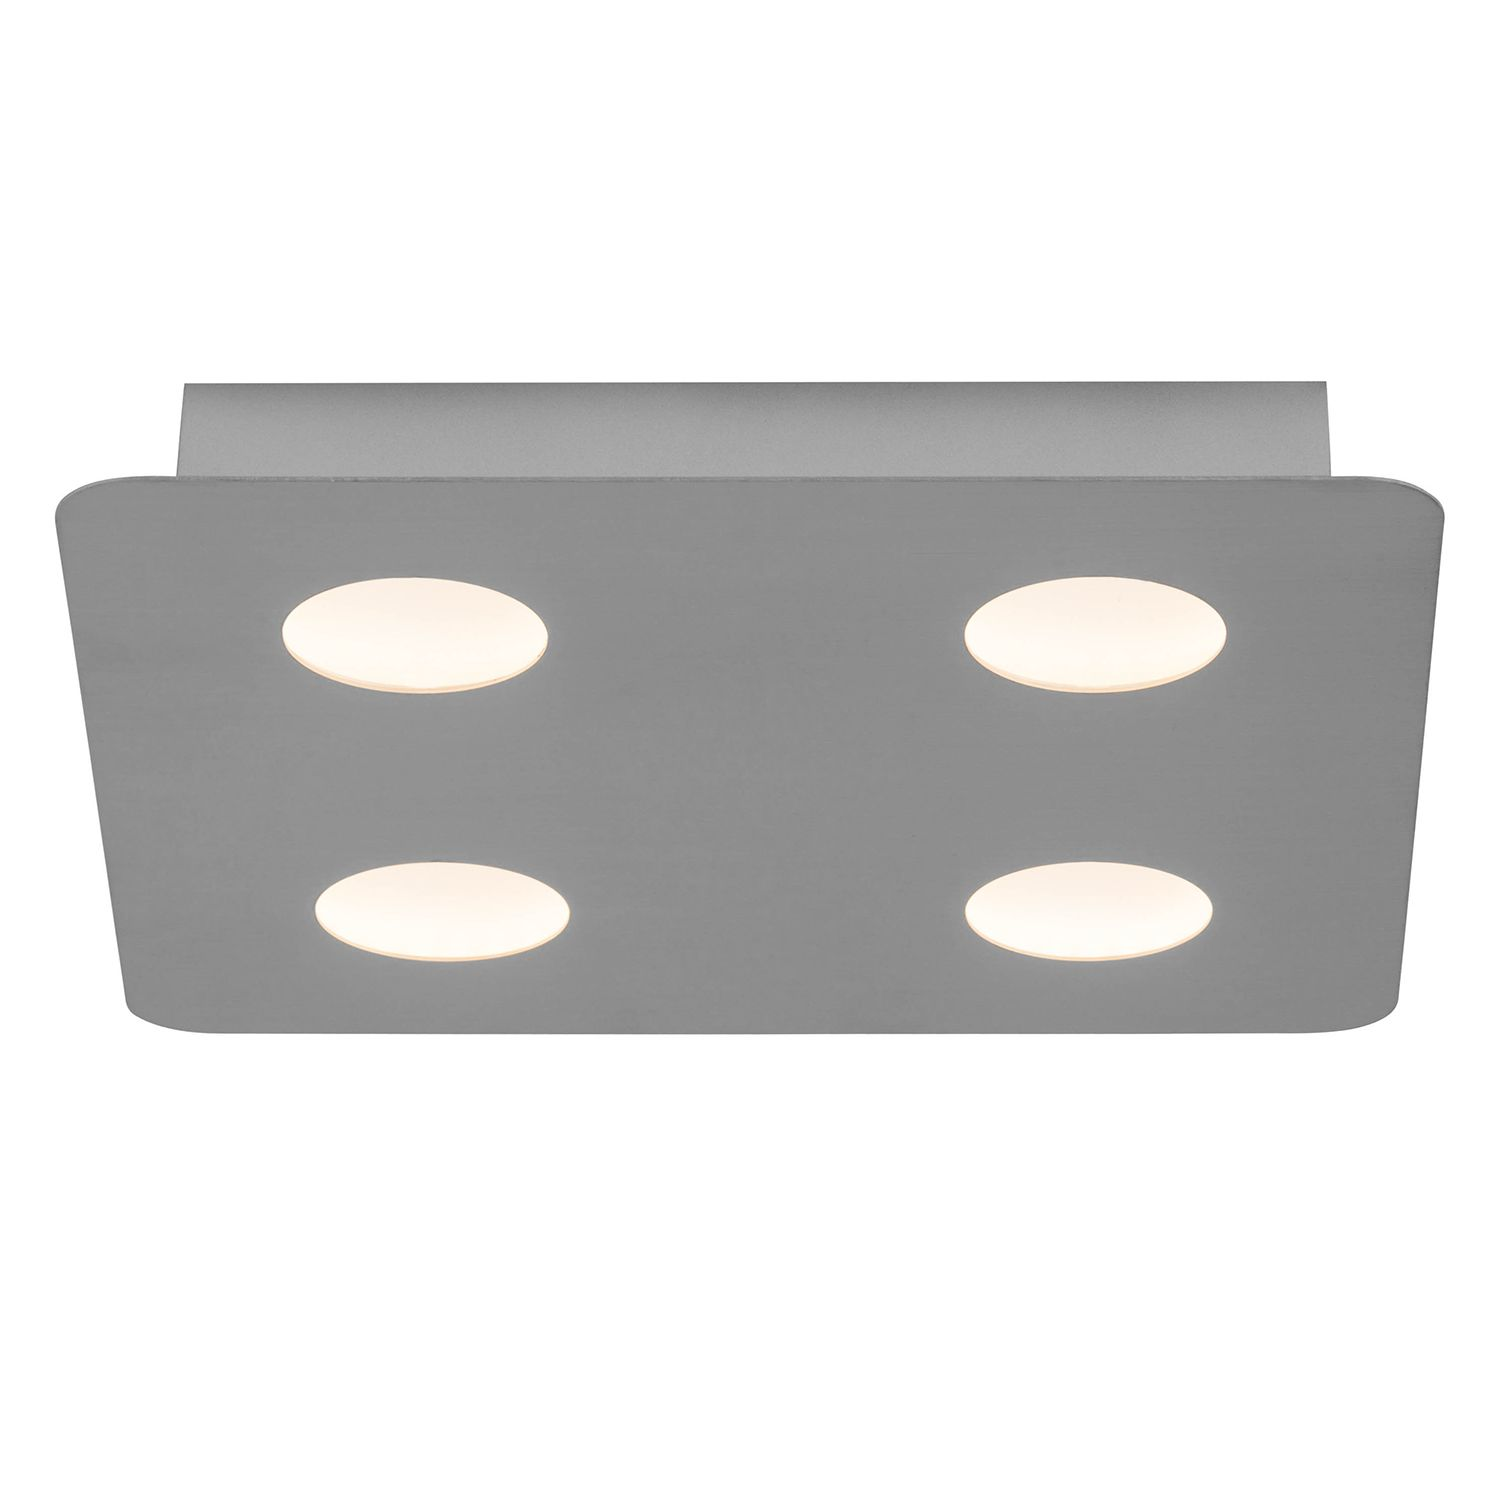 home24 LED-Wandleuchte Formit